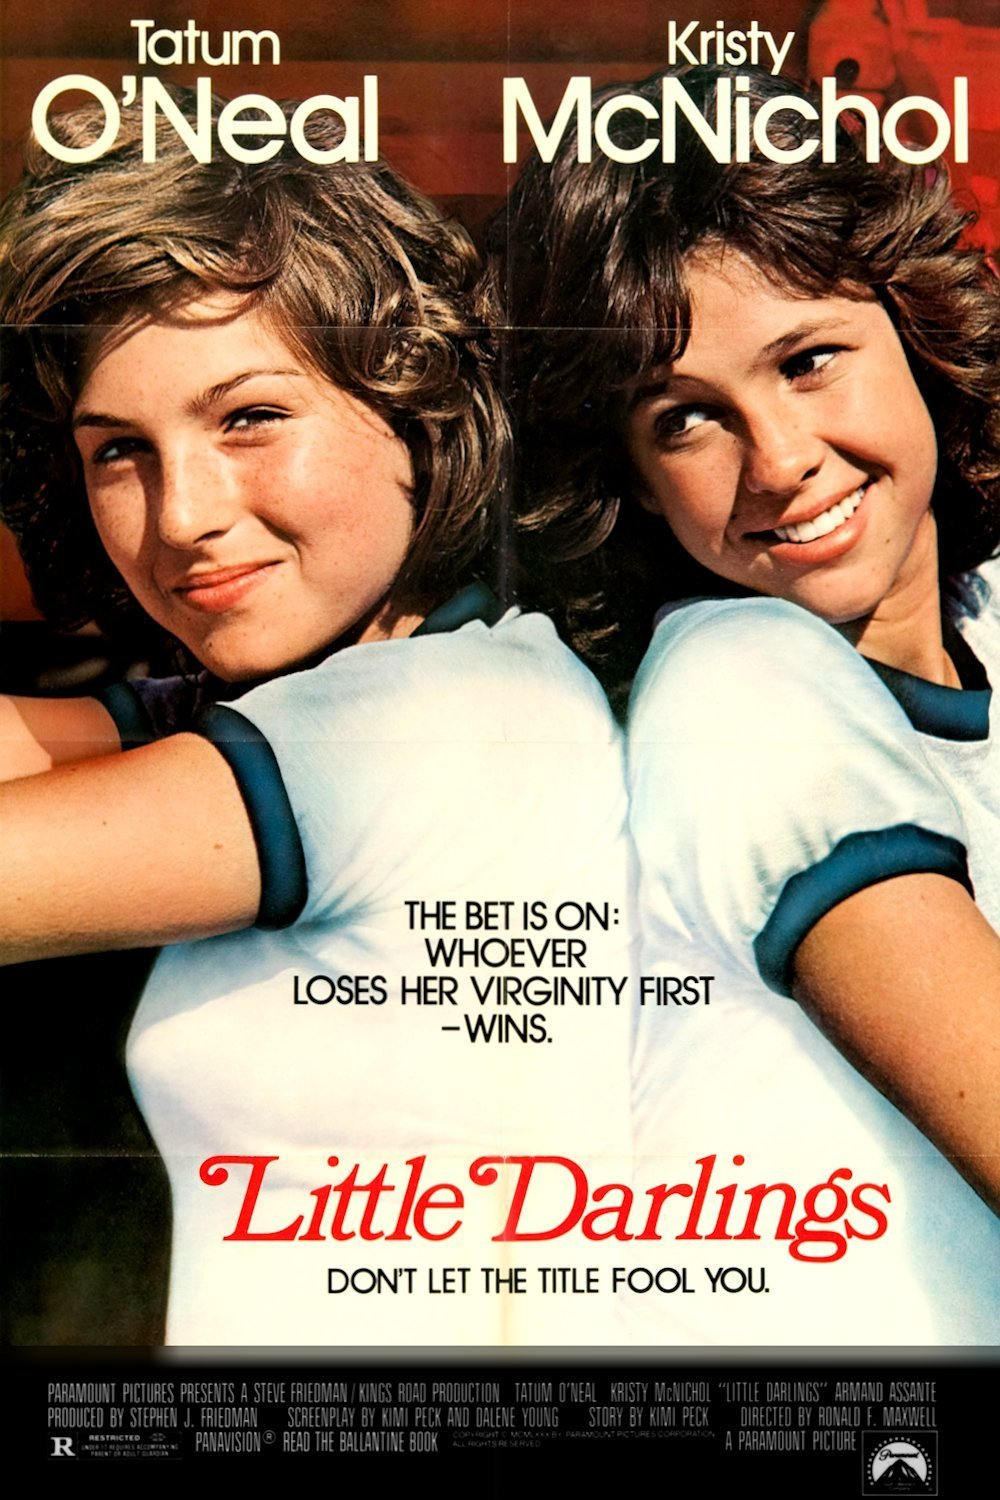 little darlings poster.jpg